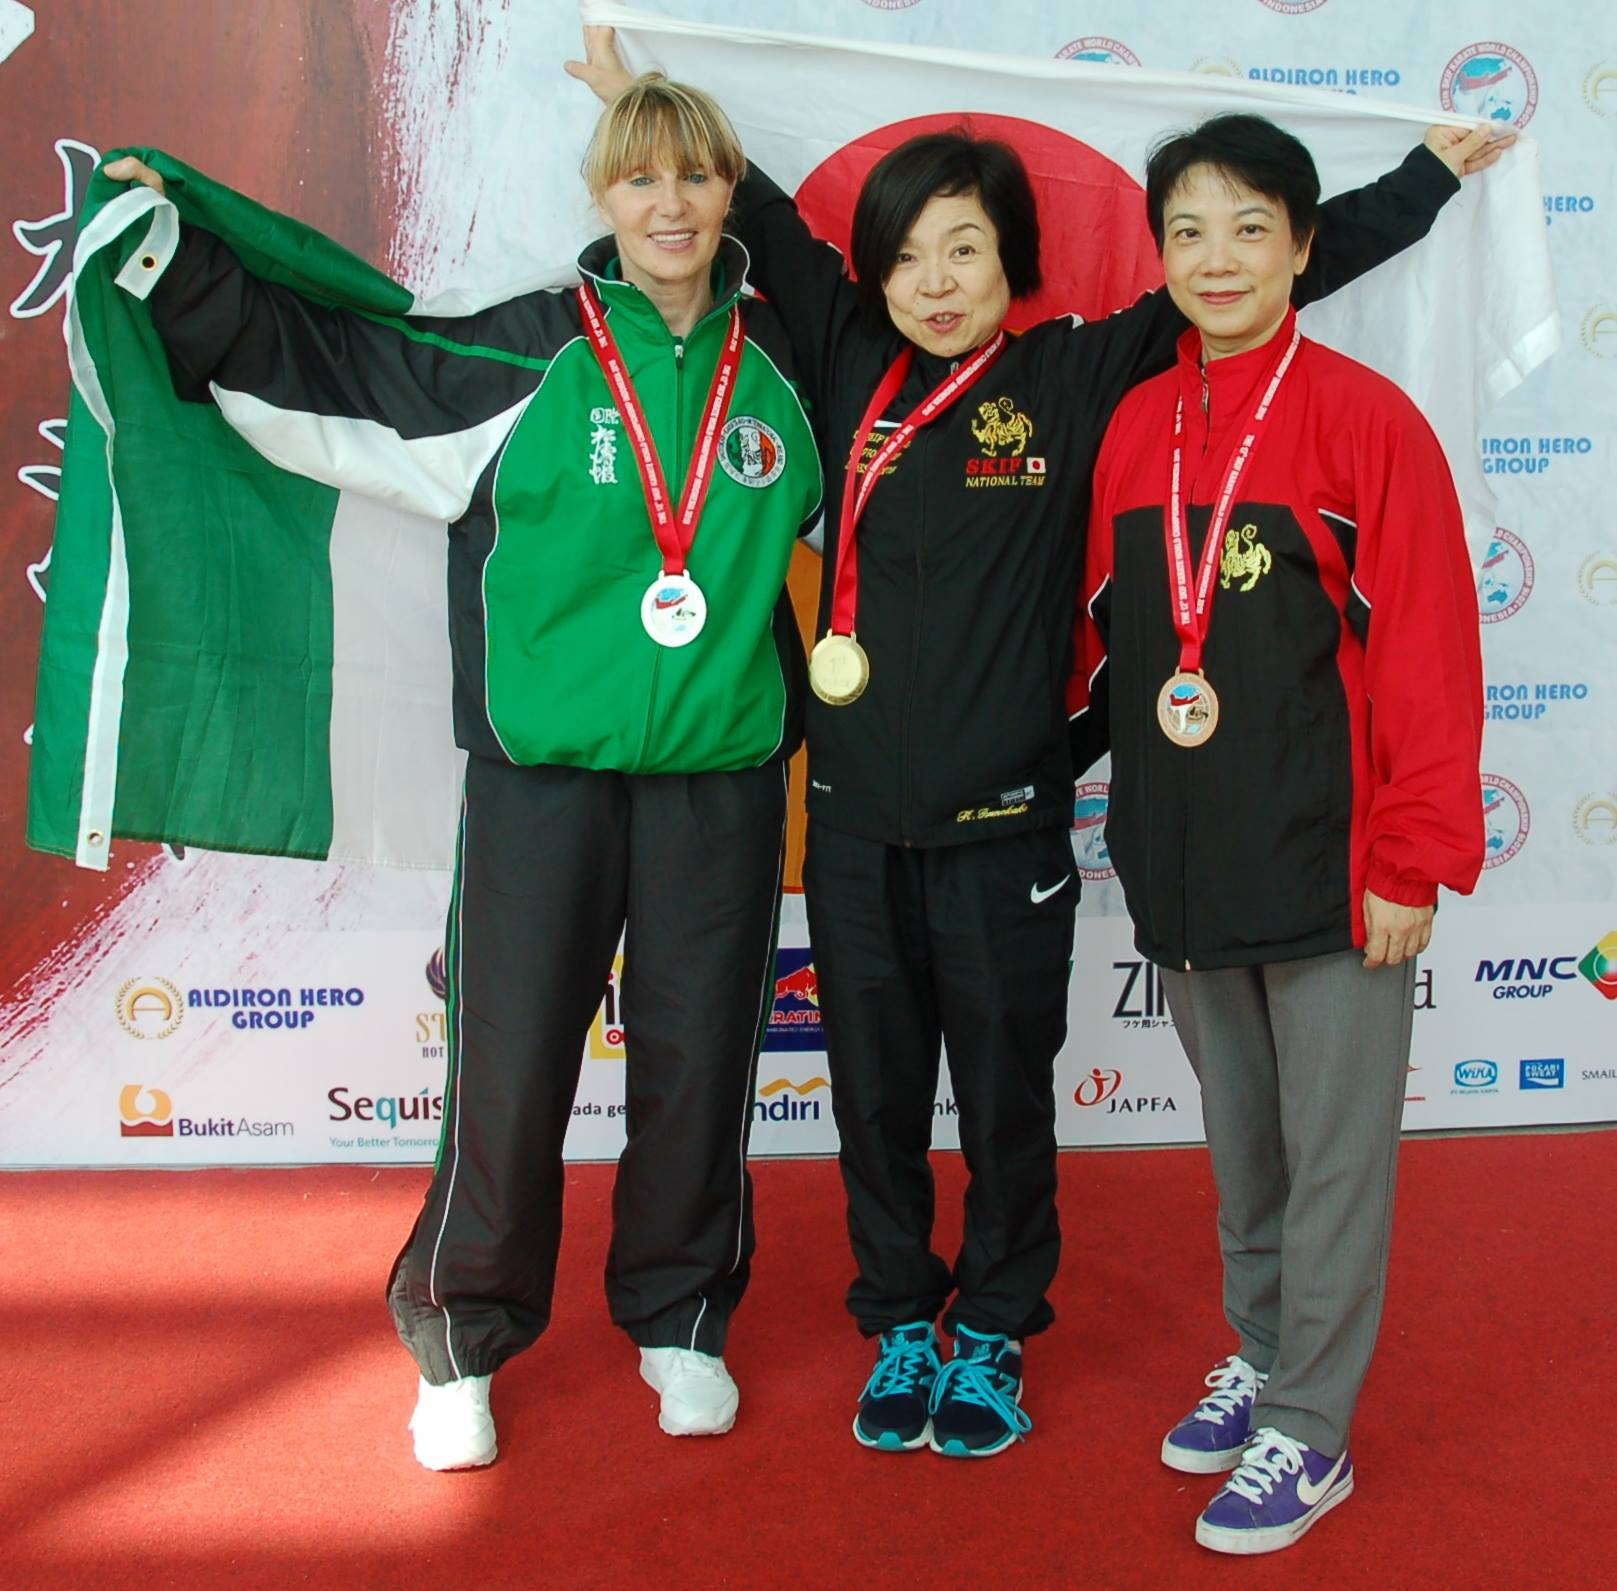 2016 - Silver for Jacqui O Shea at 12th SKIF World Championships in Jakarta Indonesia